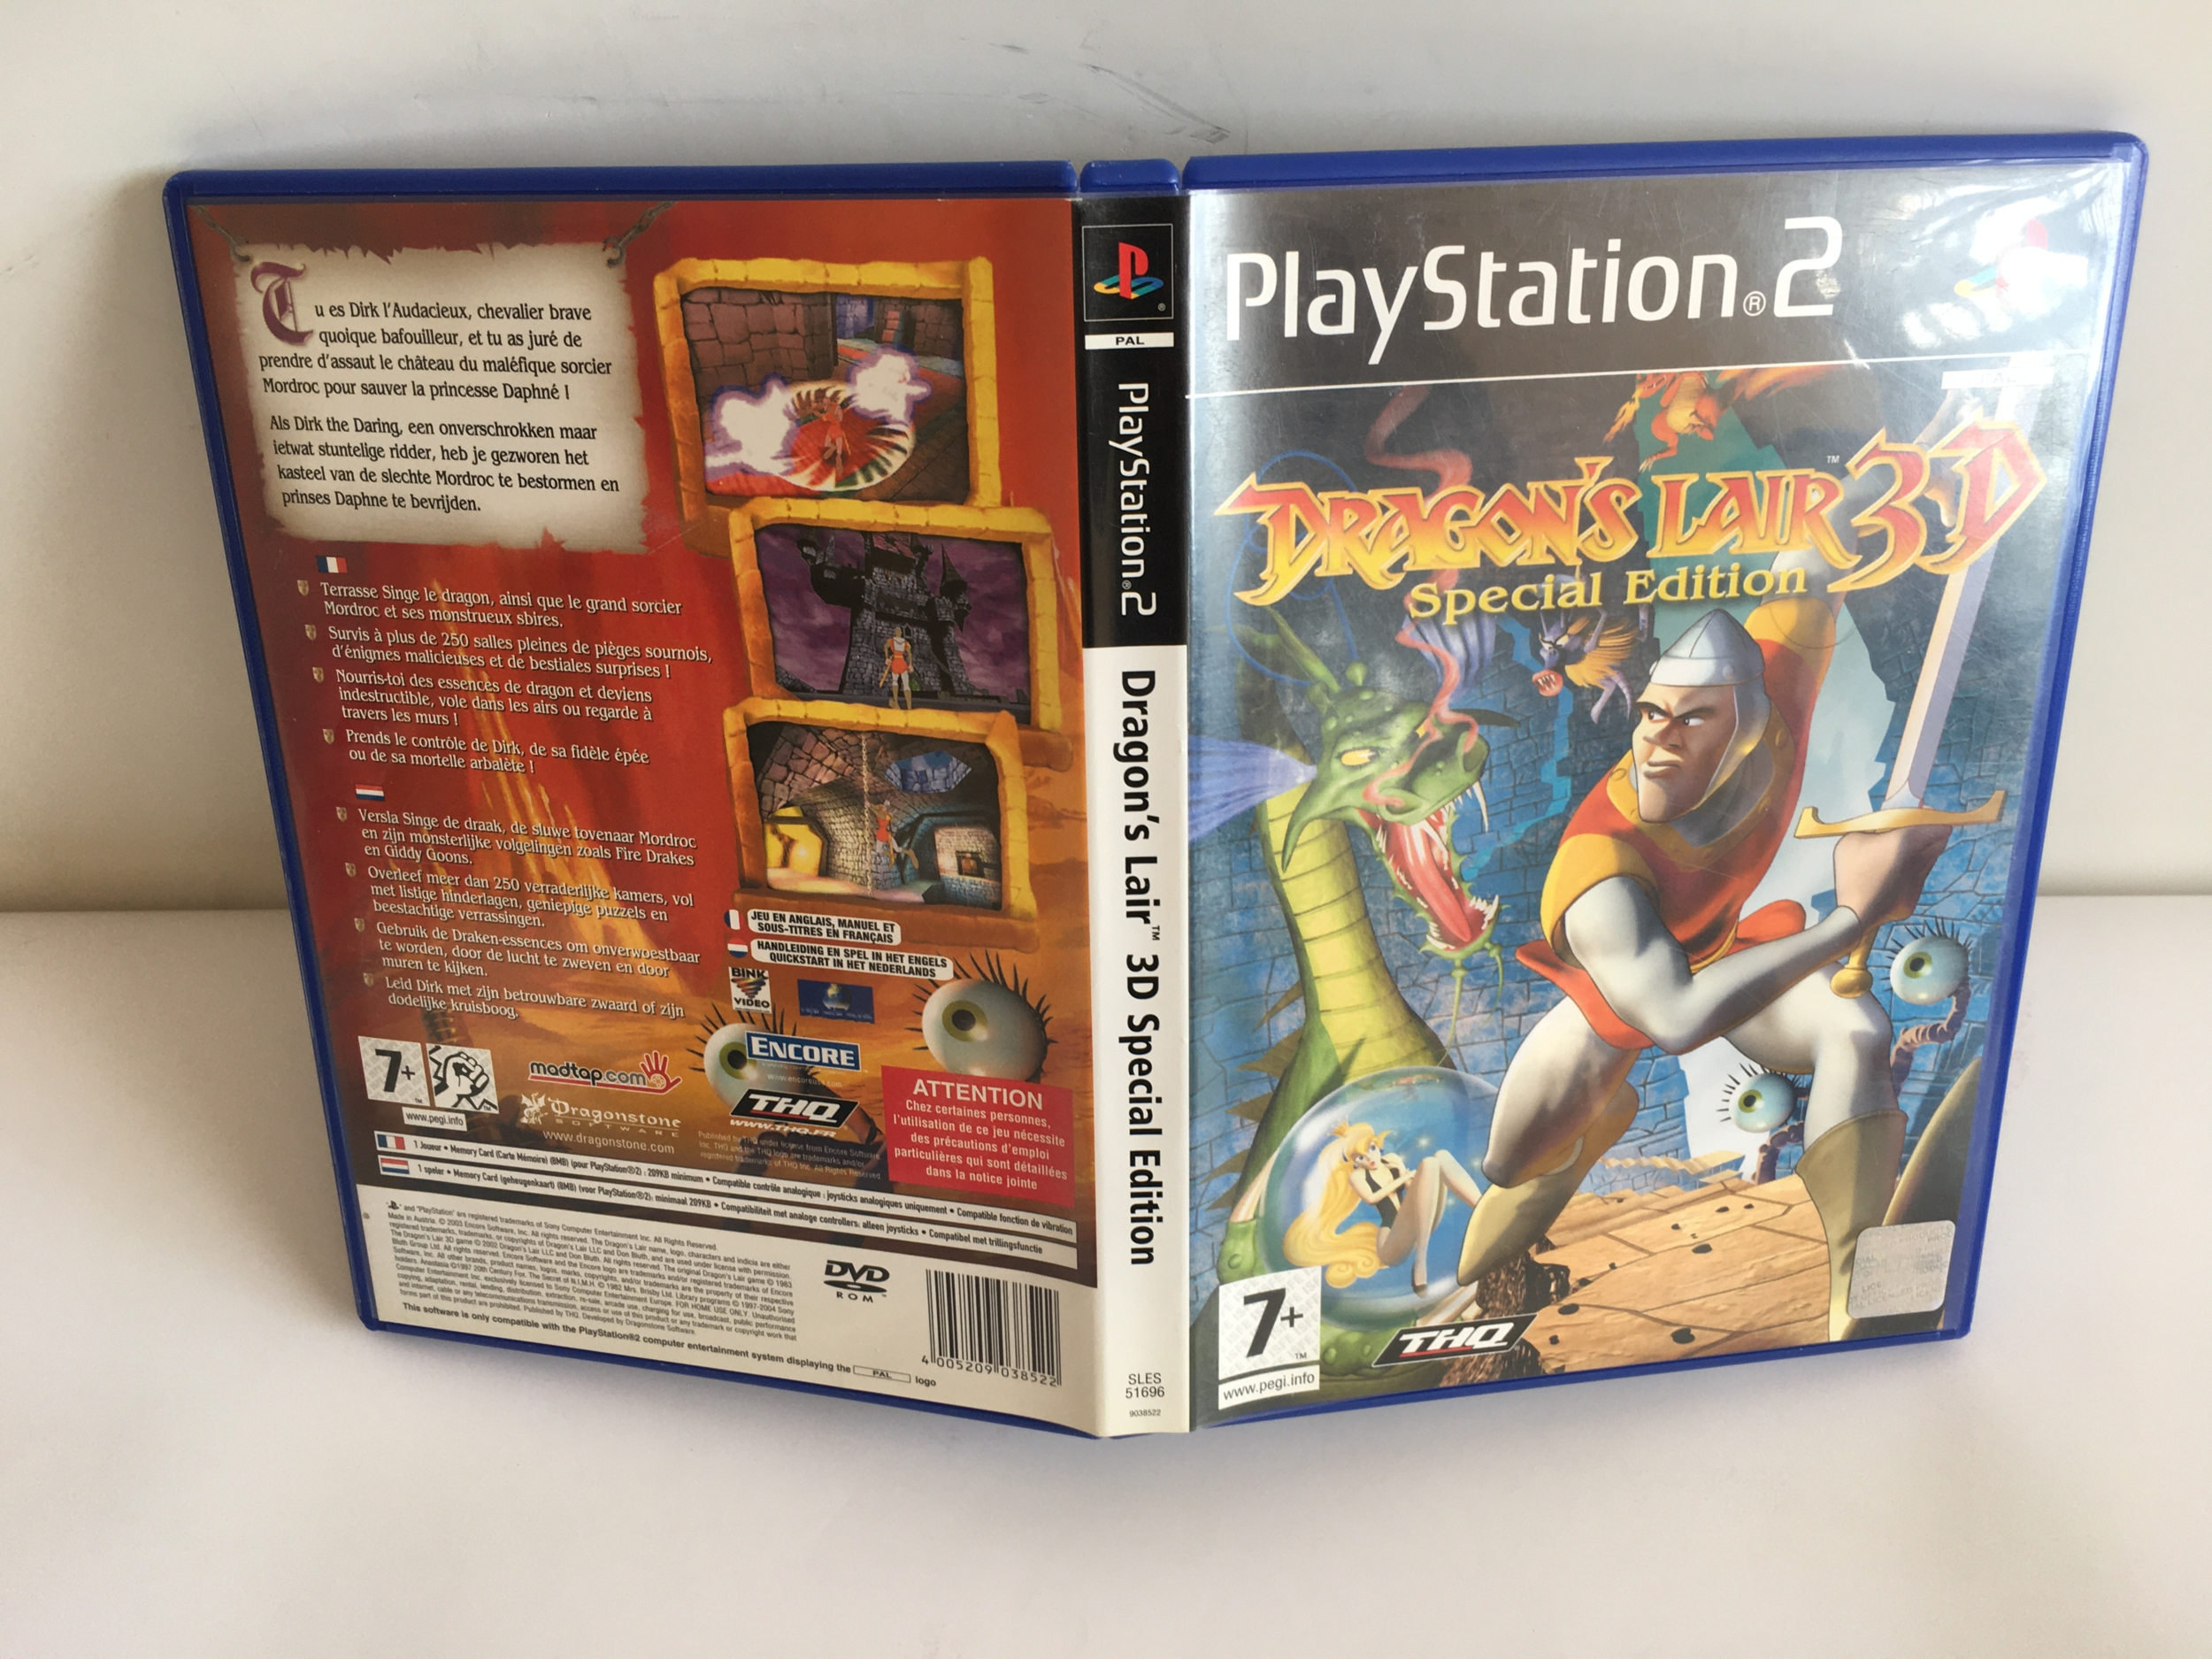 Dragon\'s Lair 3D Special Edition PS2